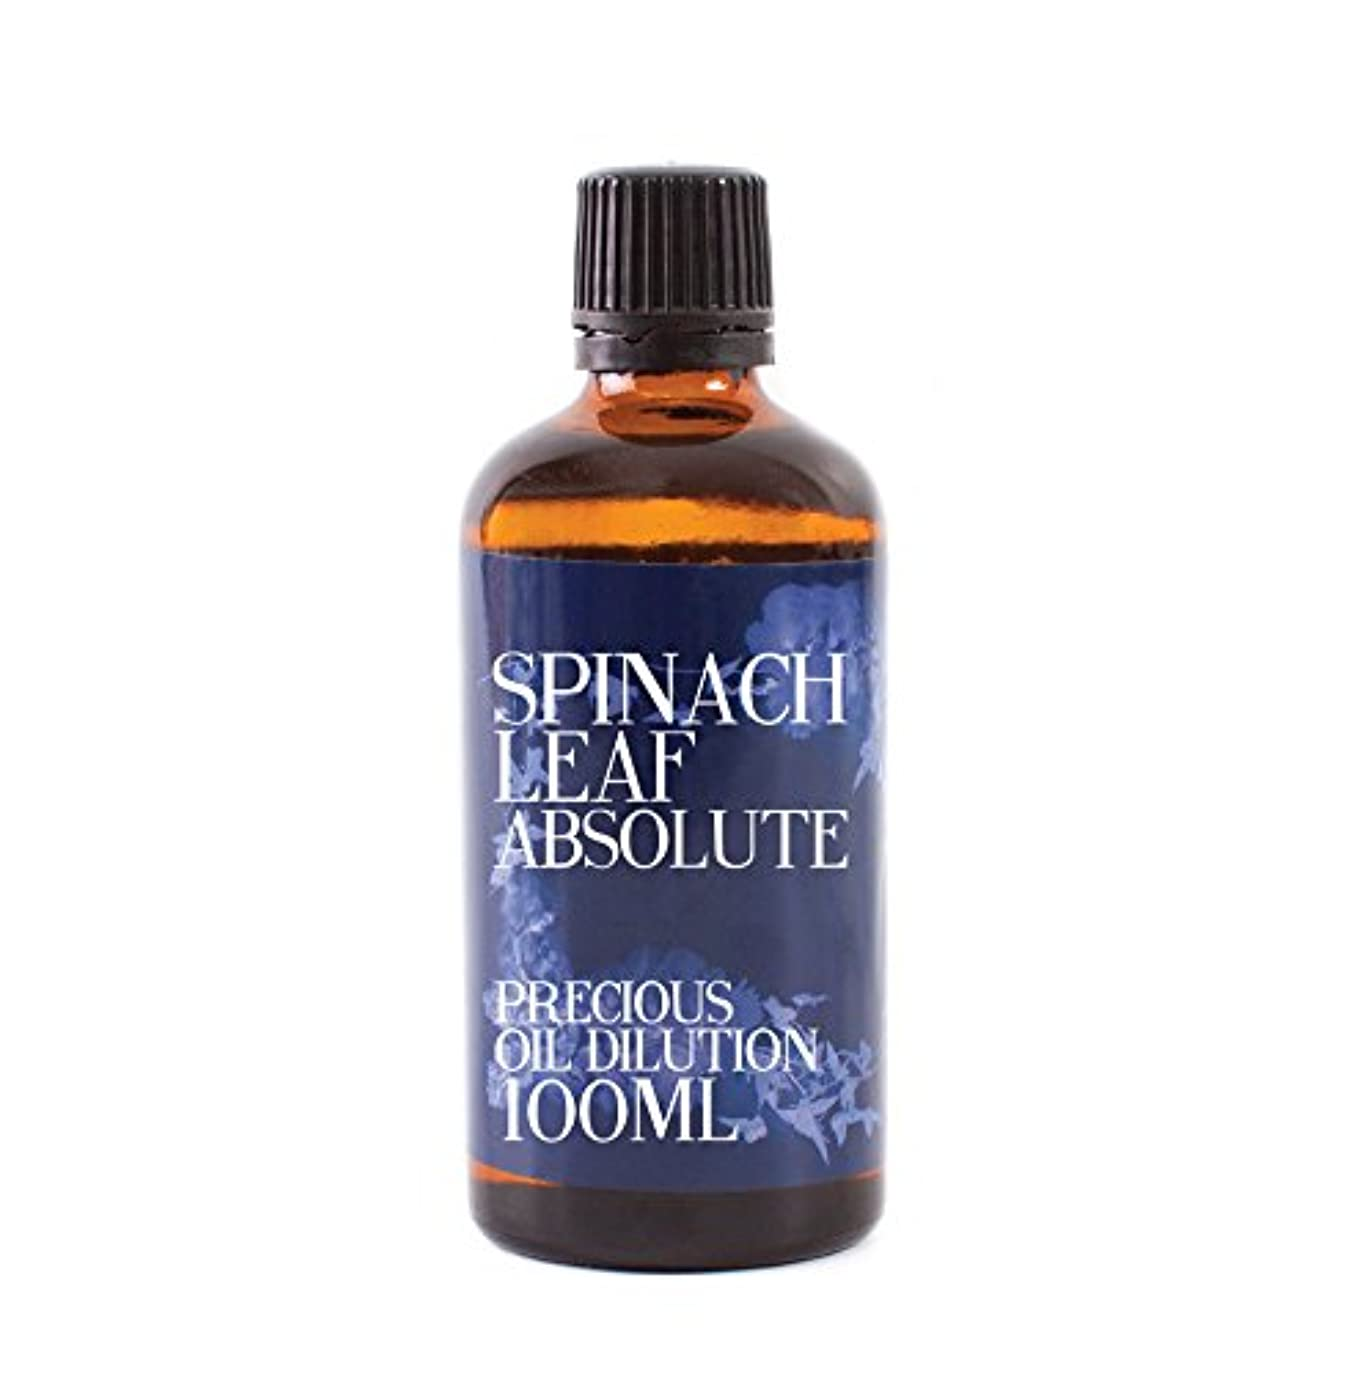 トーナメントせっかちキャンディーSpinach Leaf Absolute Oil Dilution - 100ml - 3% Jojoba Blend